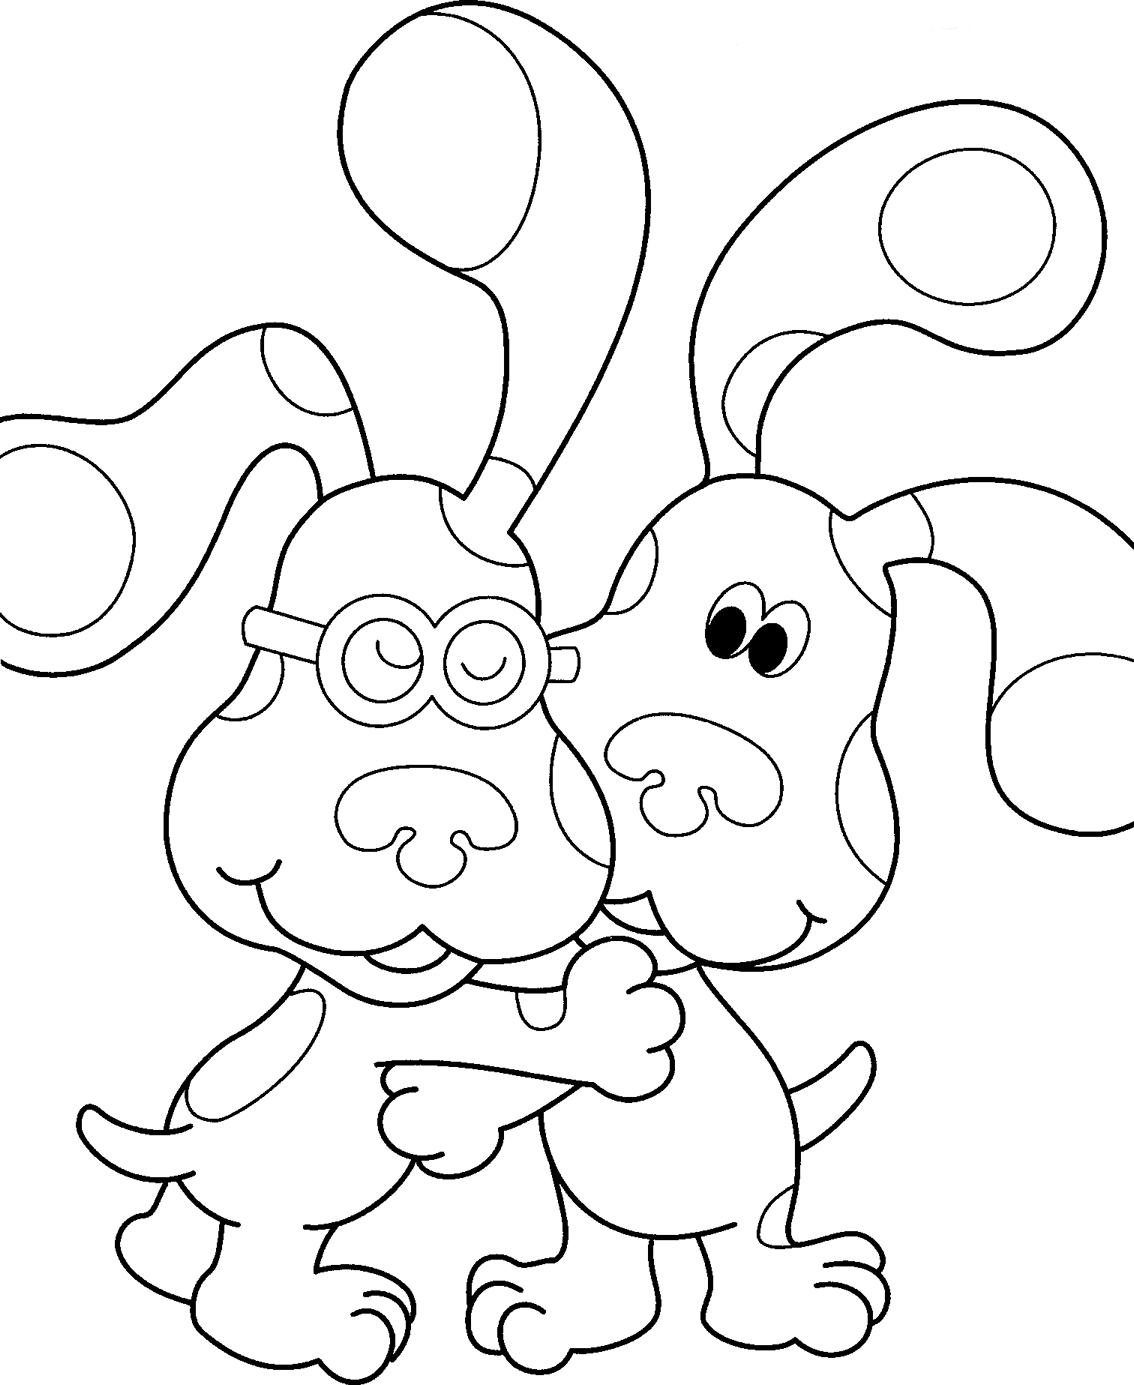 This is a photo of Monster nick jr printable coloring pages